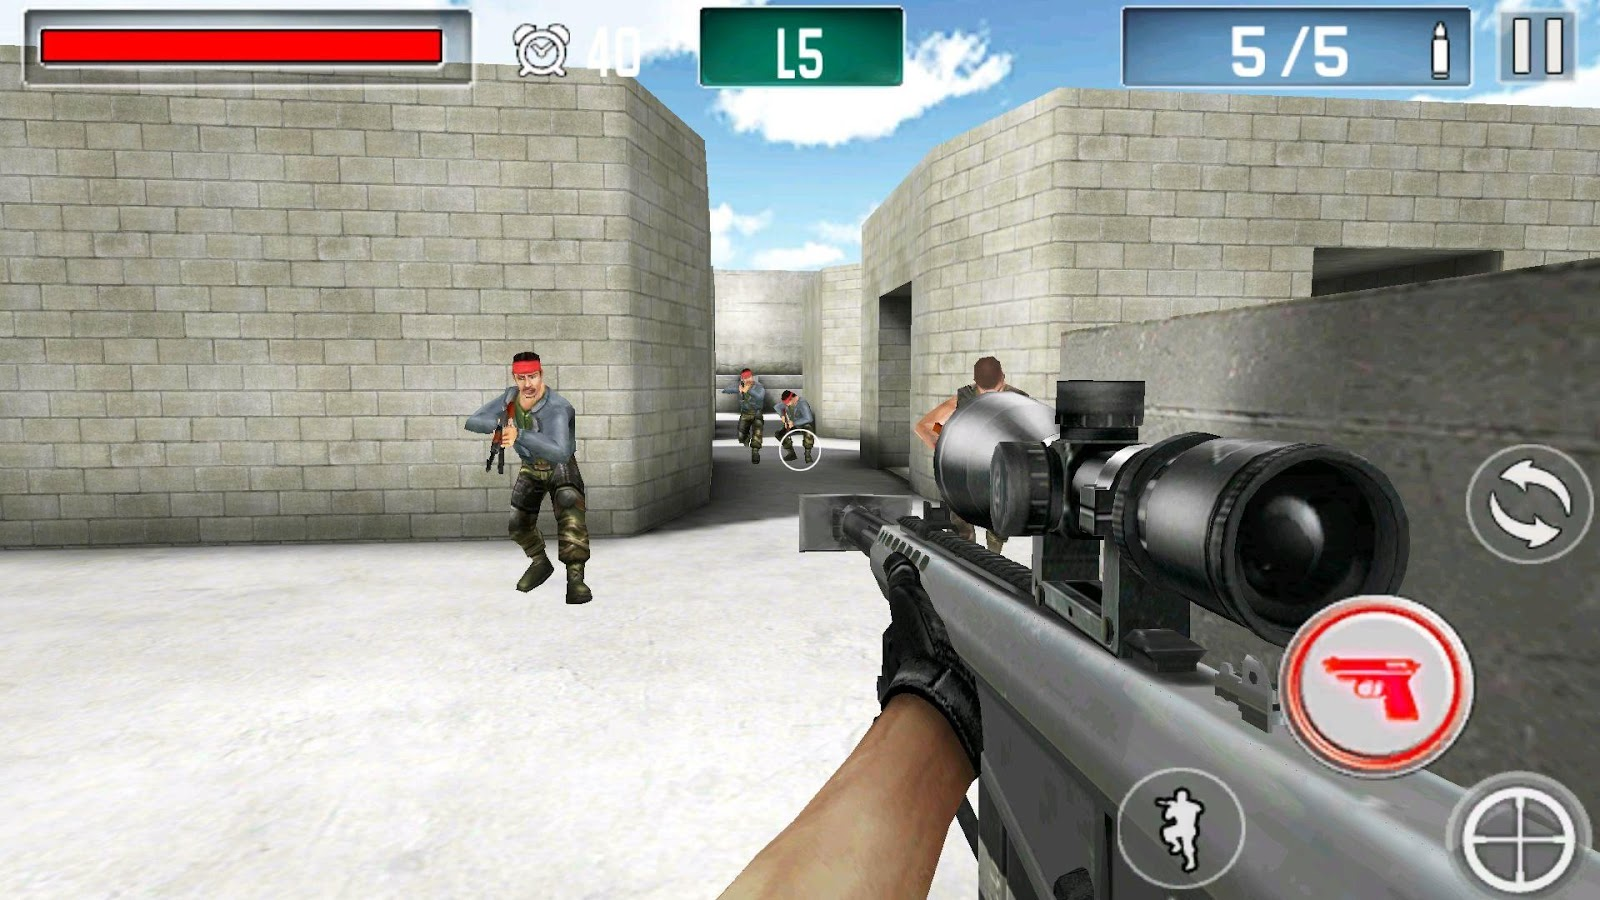 Gun play free games    Business planning tools free Gun play free games